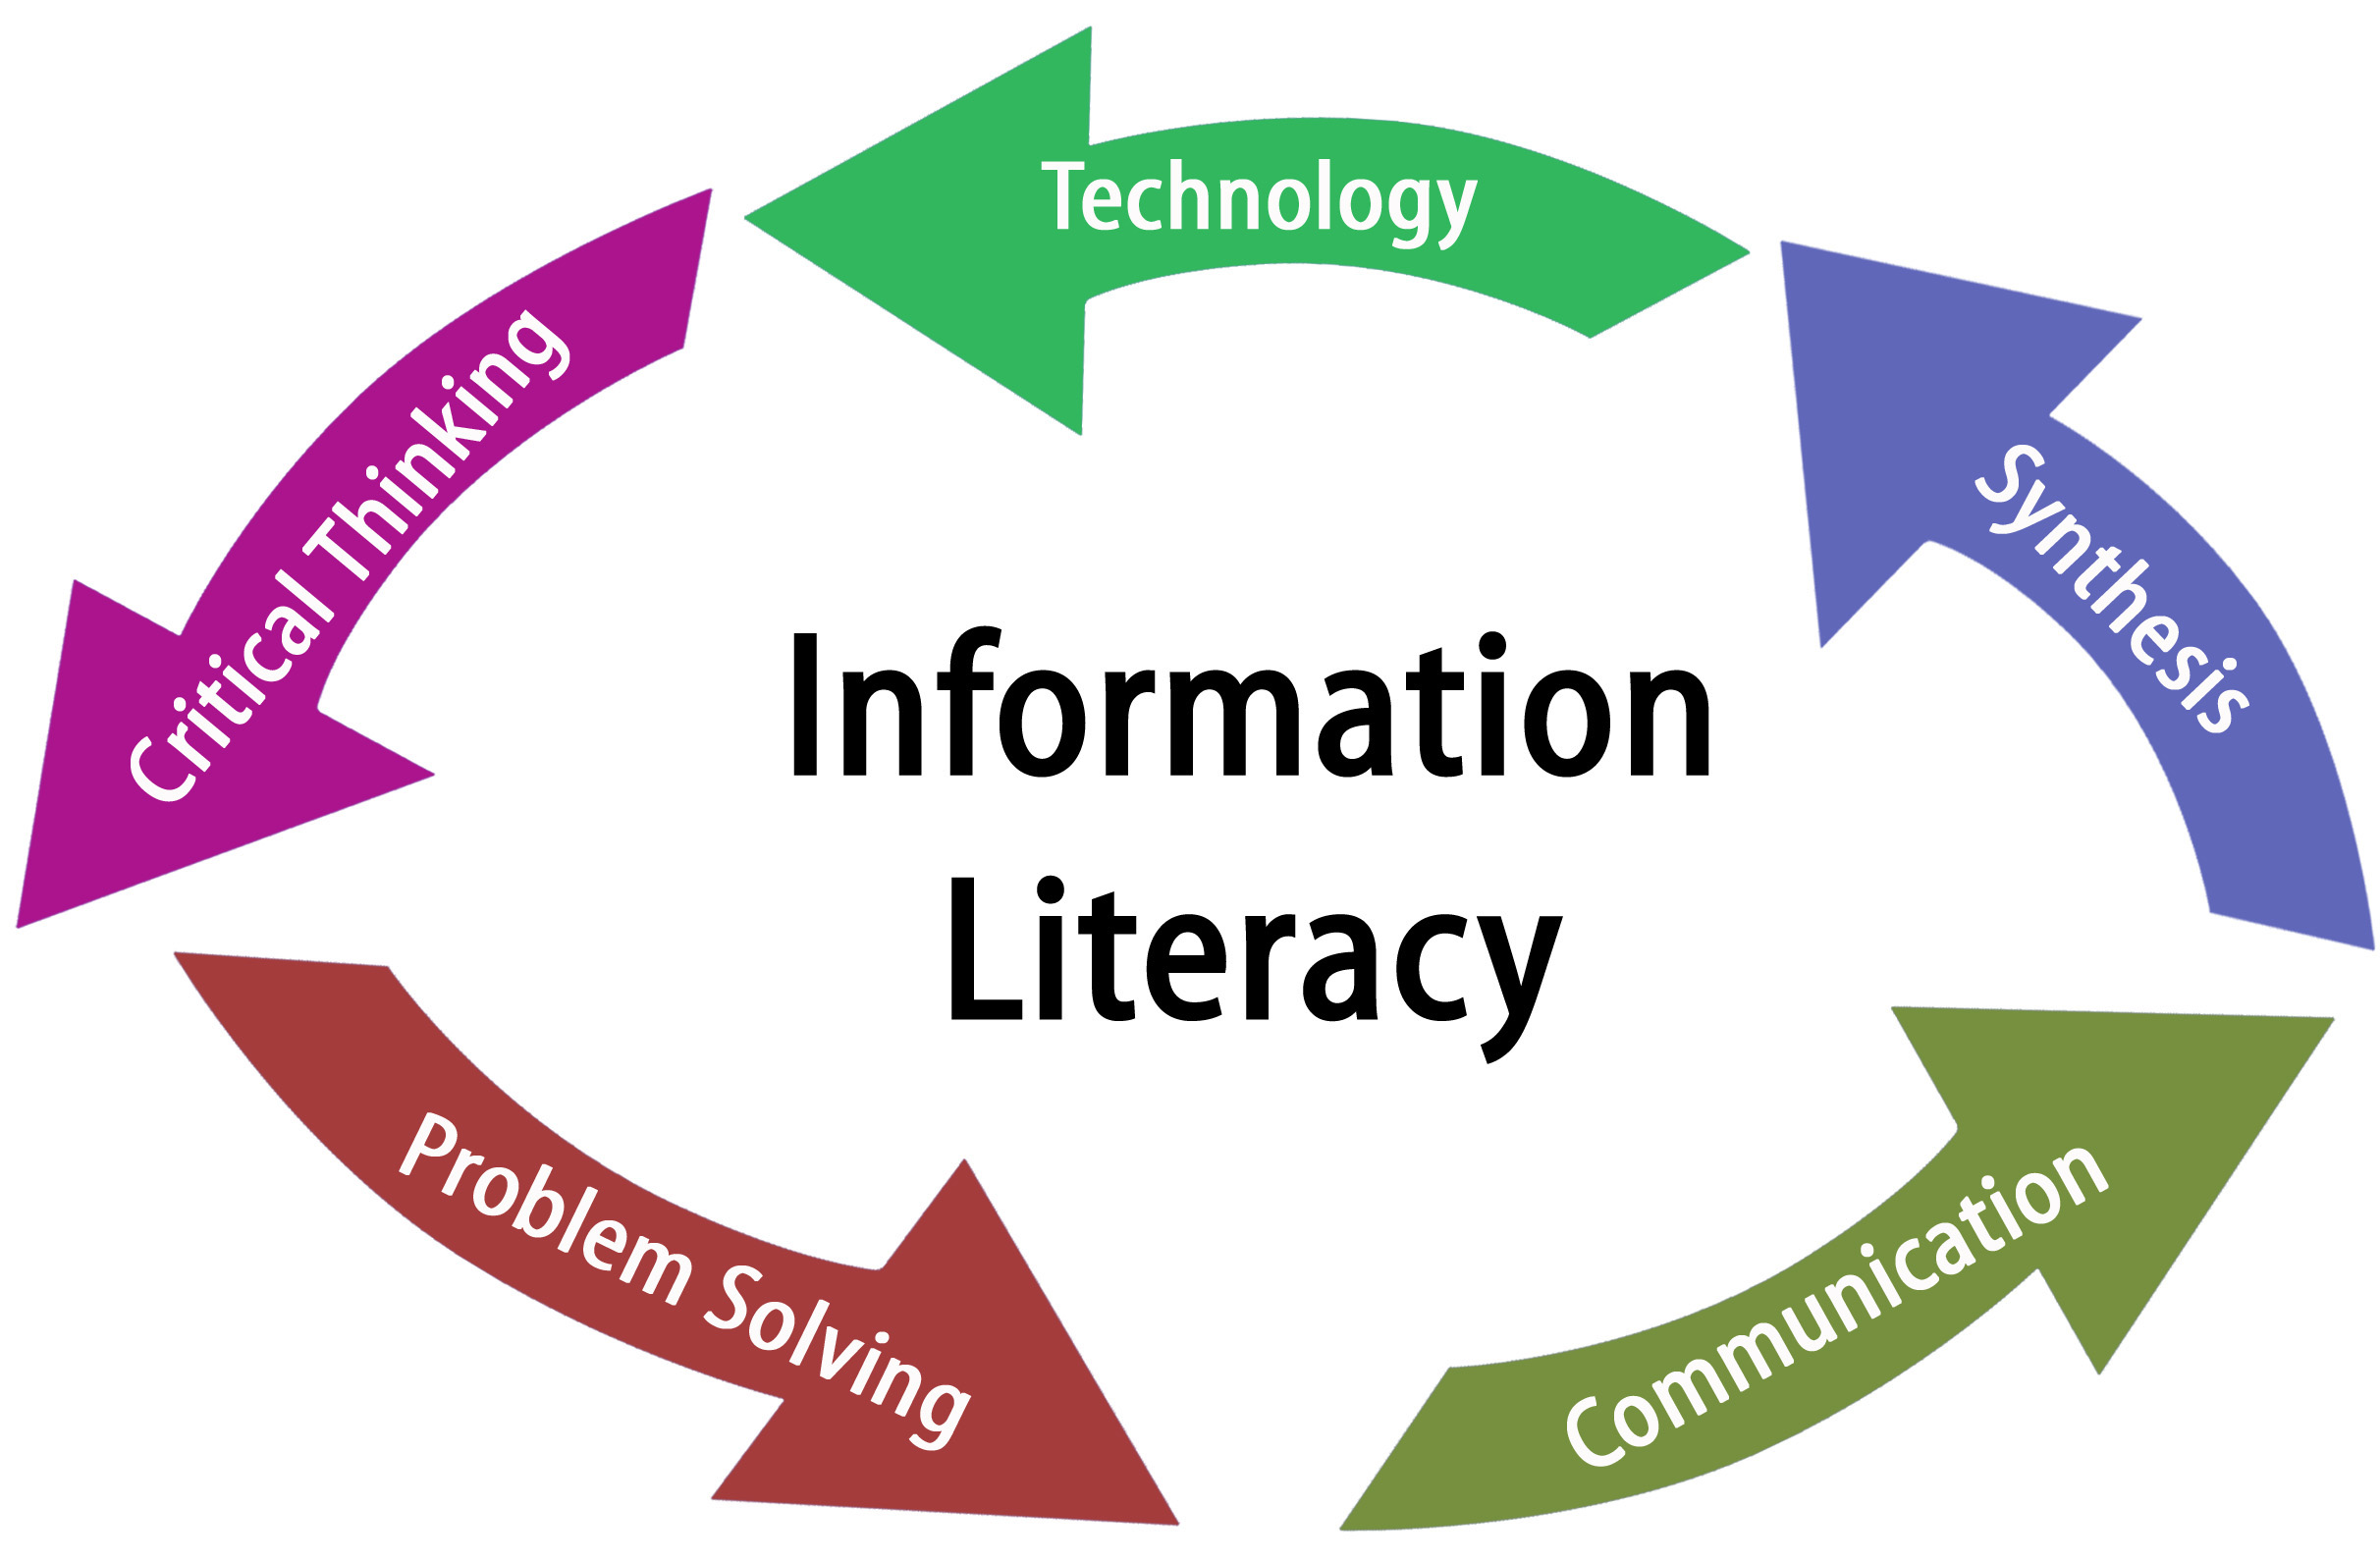 Information Literacy image